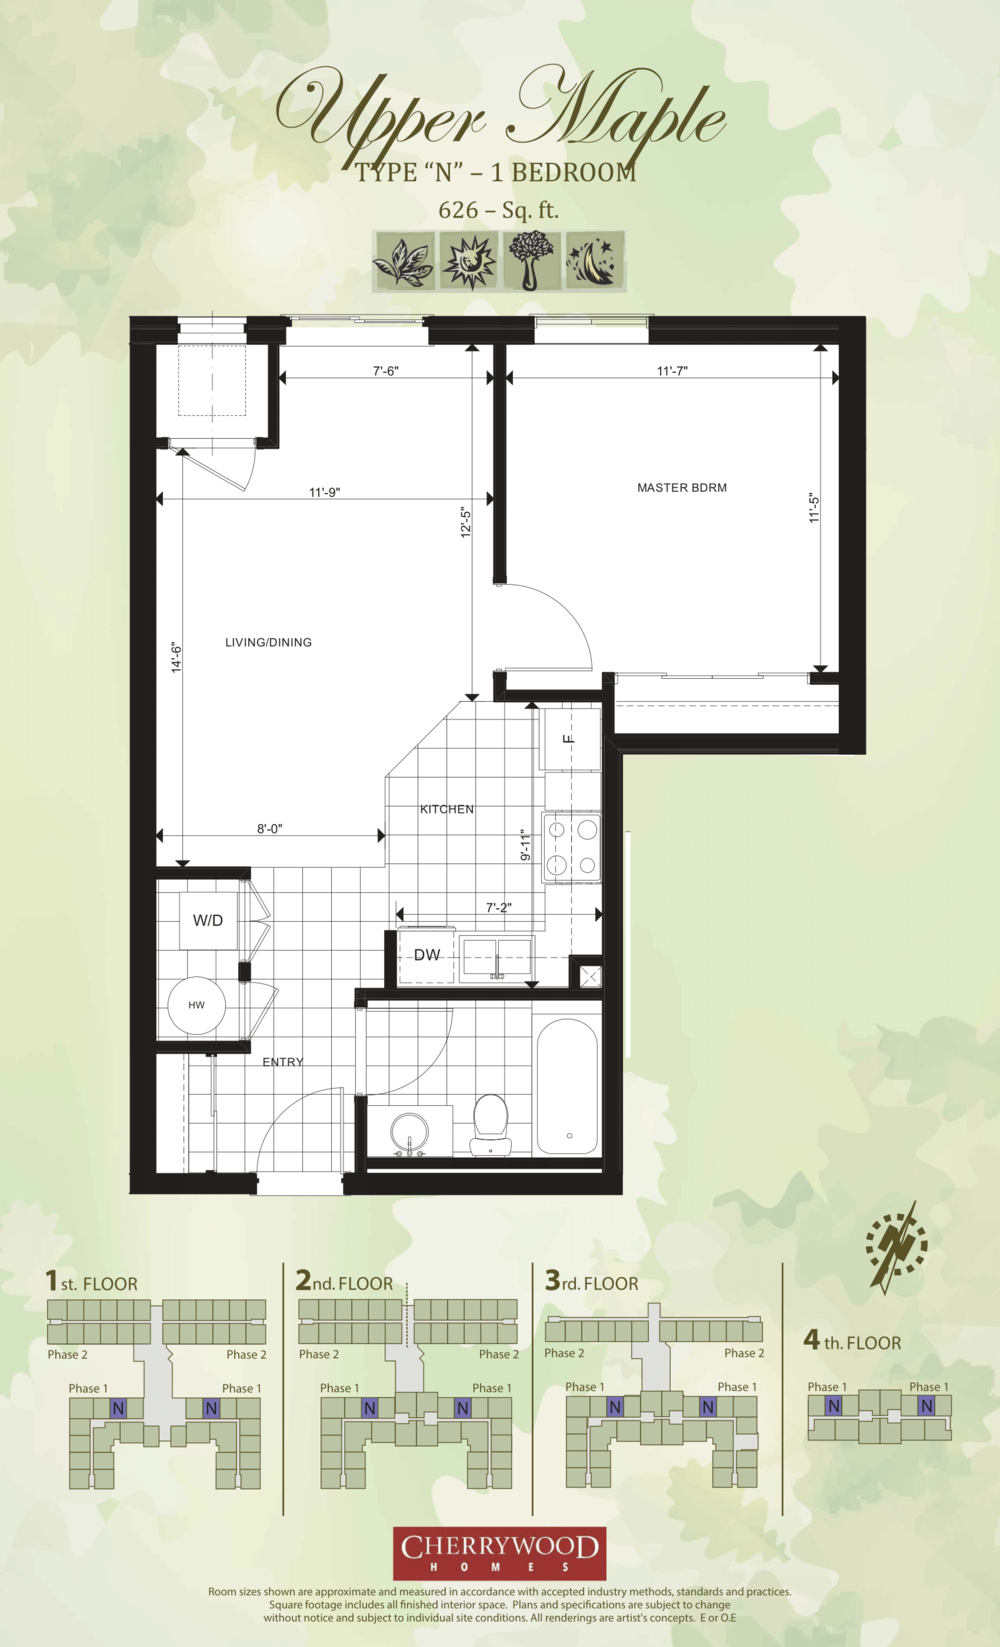 Upper Maple-From $319,000